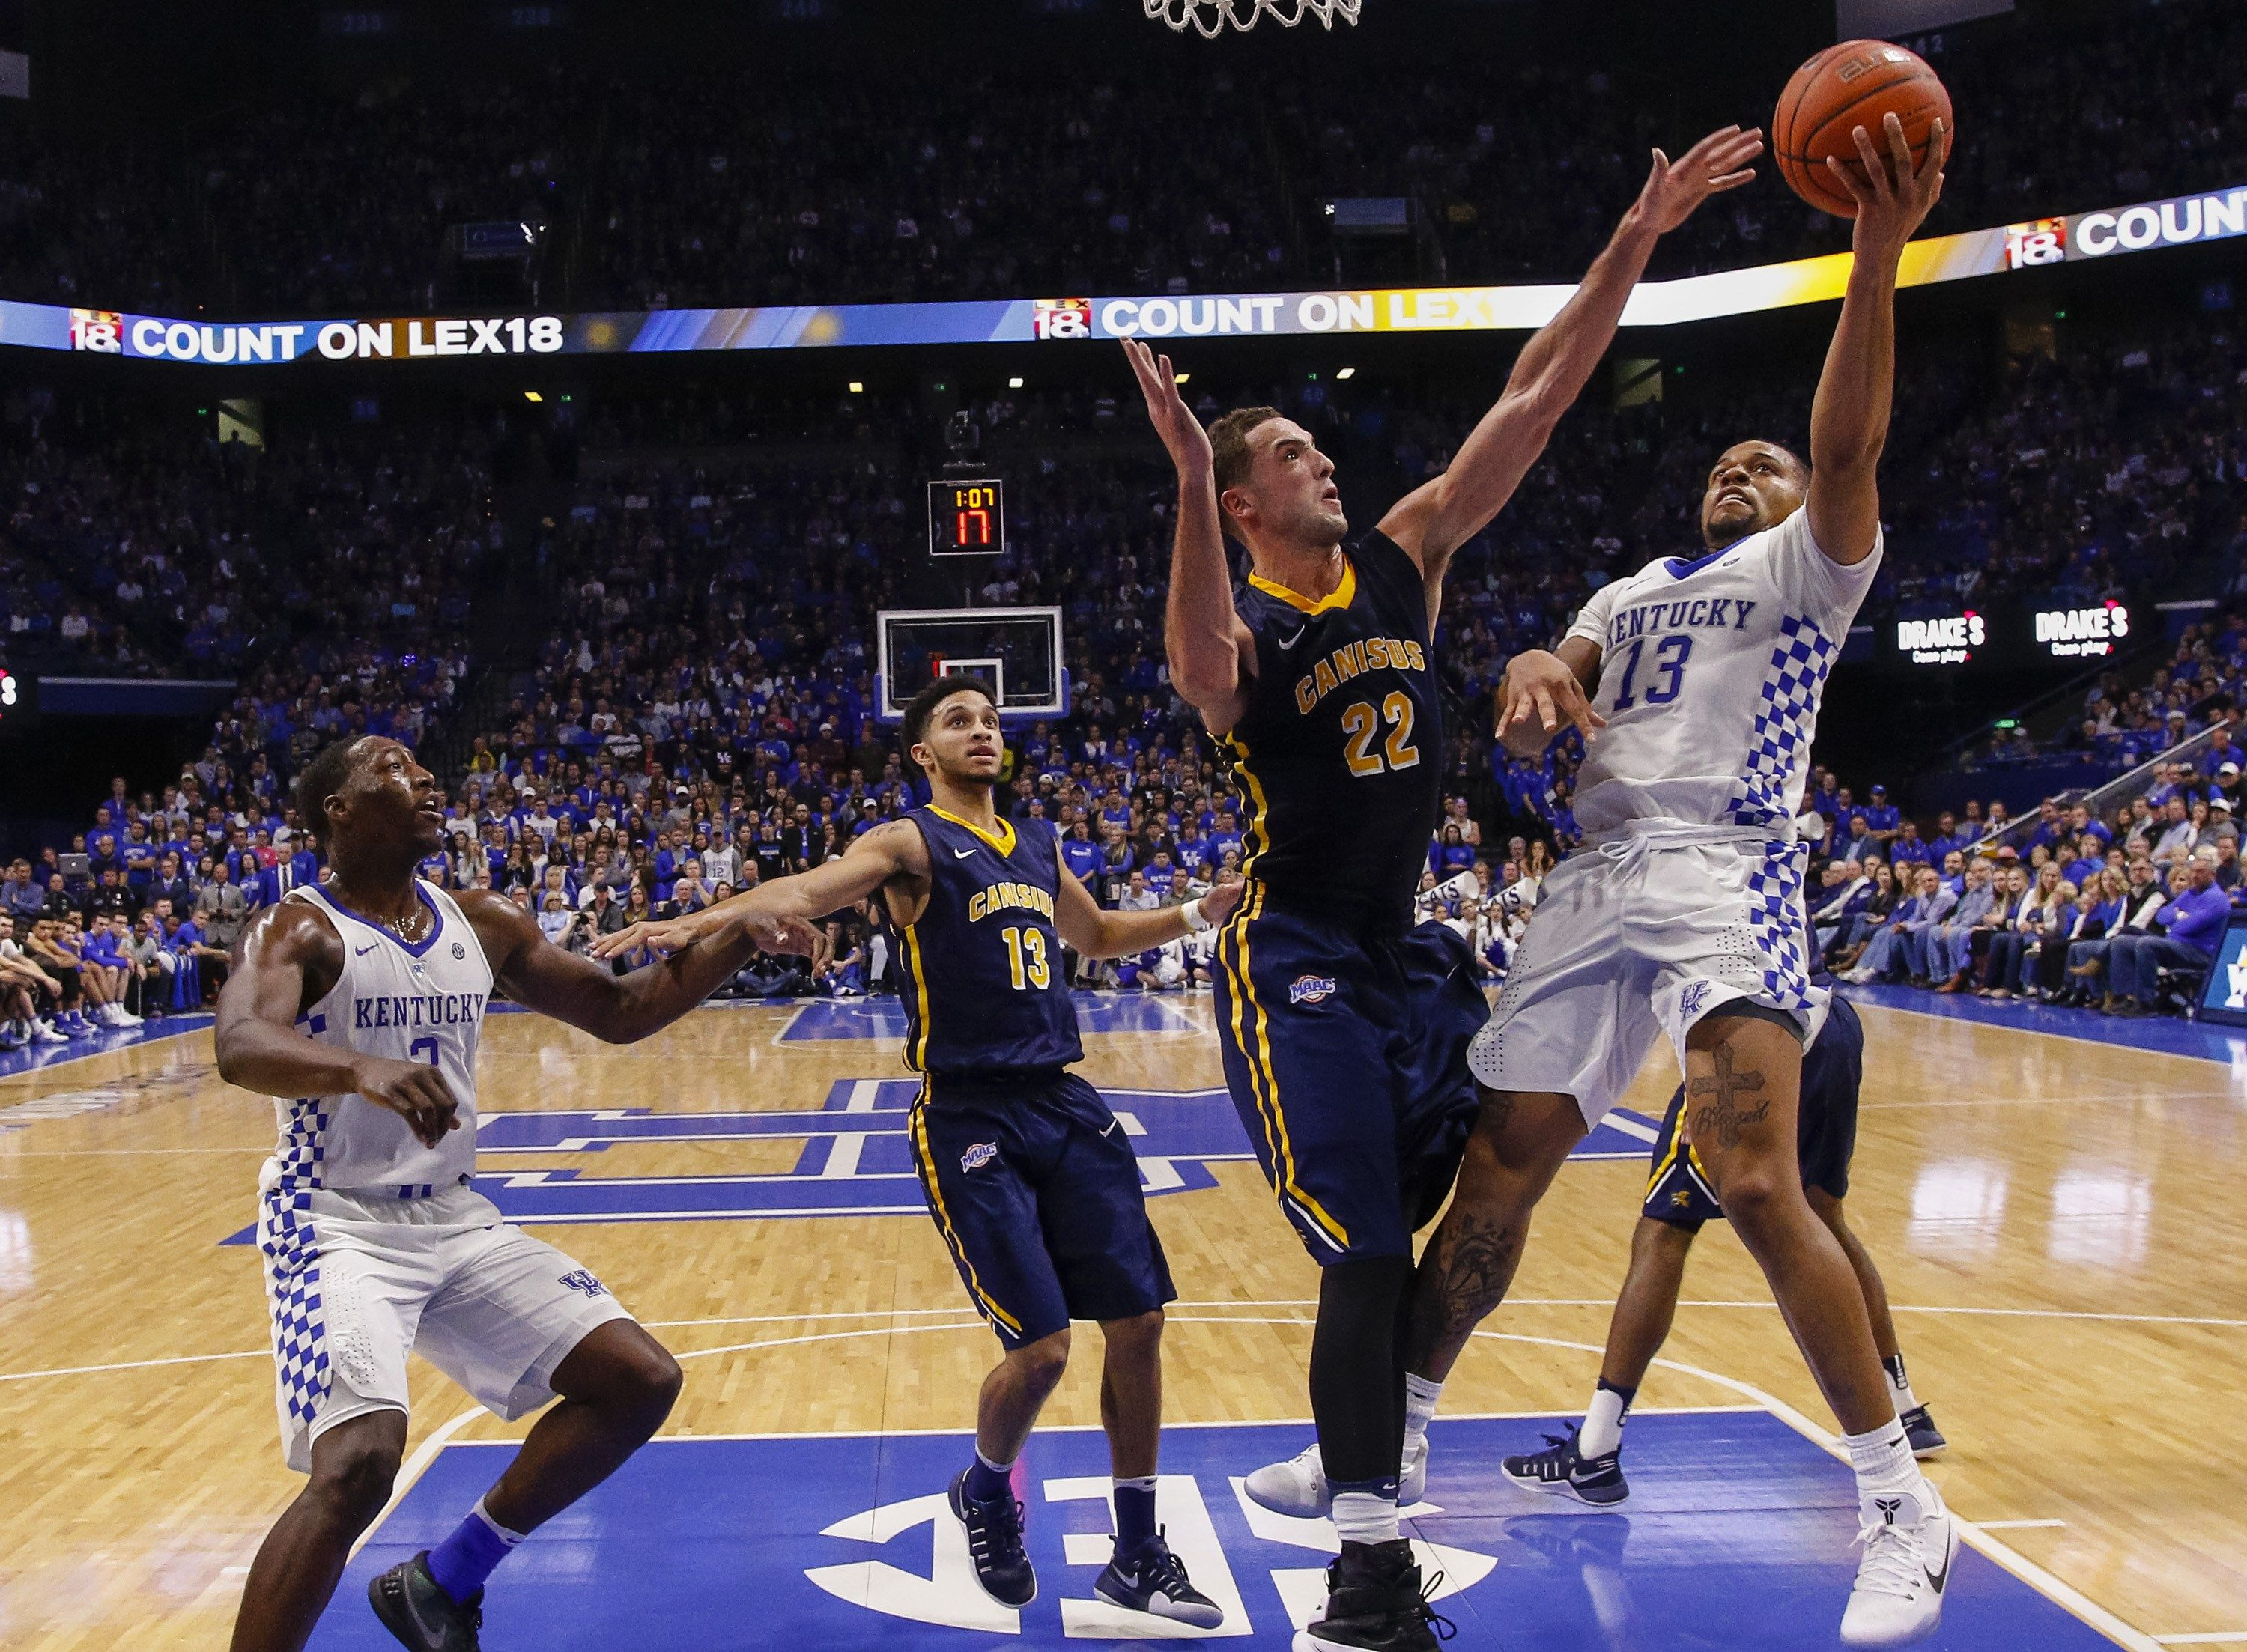 Canisius Hangs Tough Eventually Falls To 2 Kentucky Kentucky Ncaa Basketball Tough